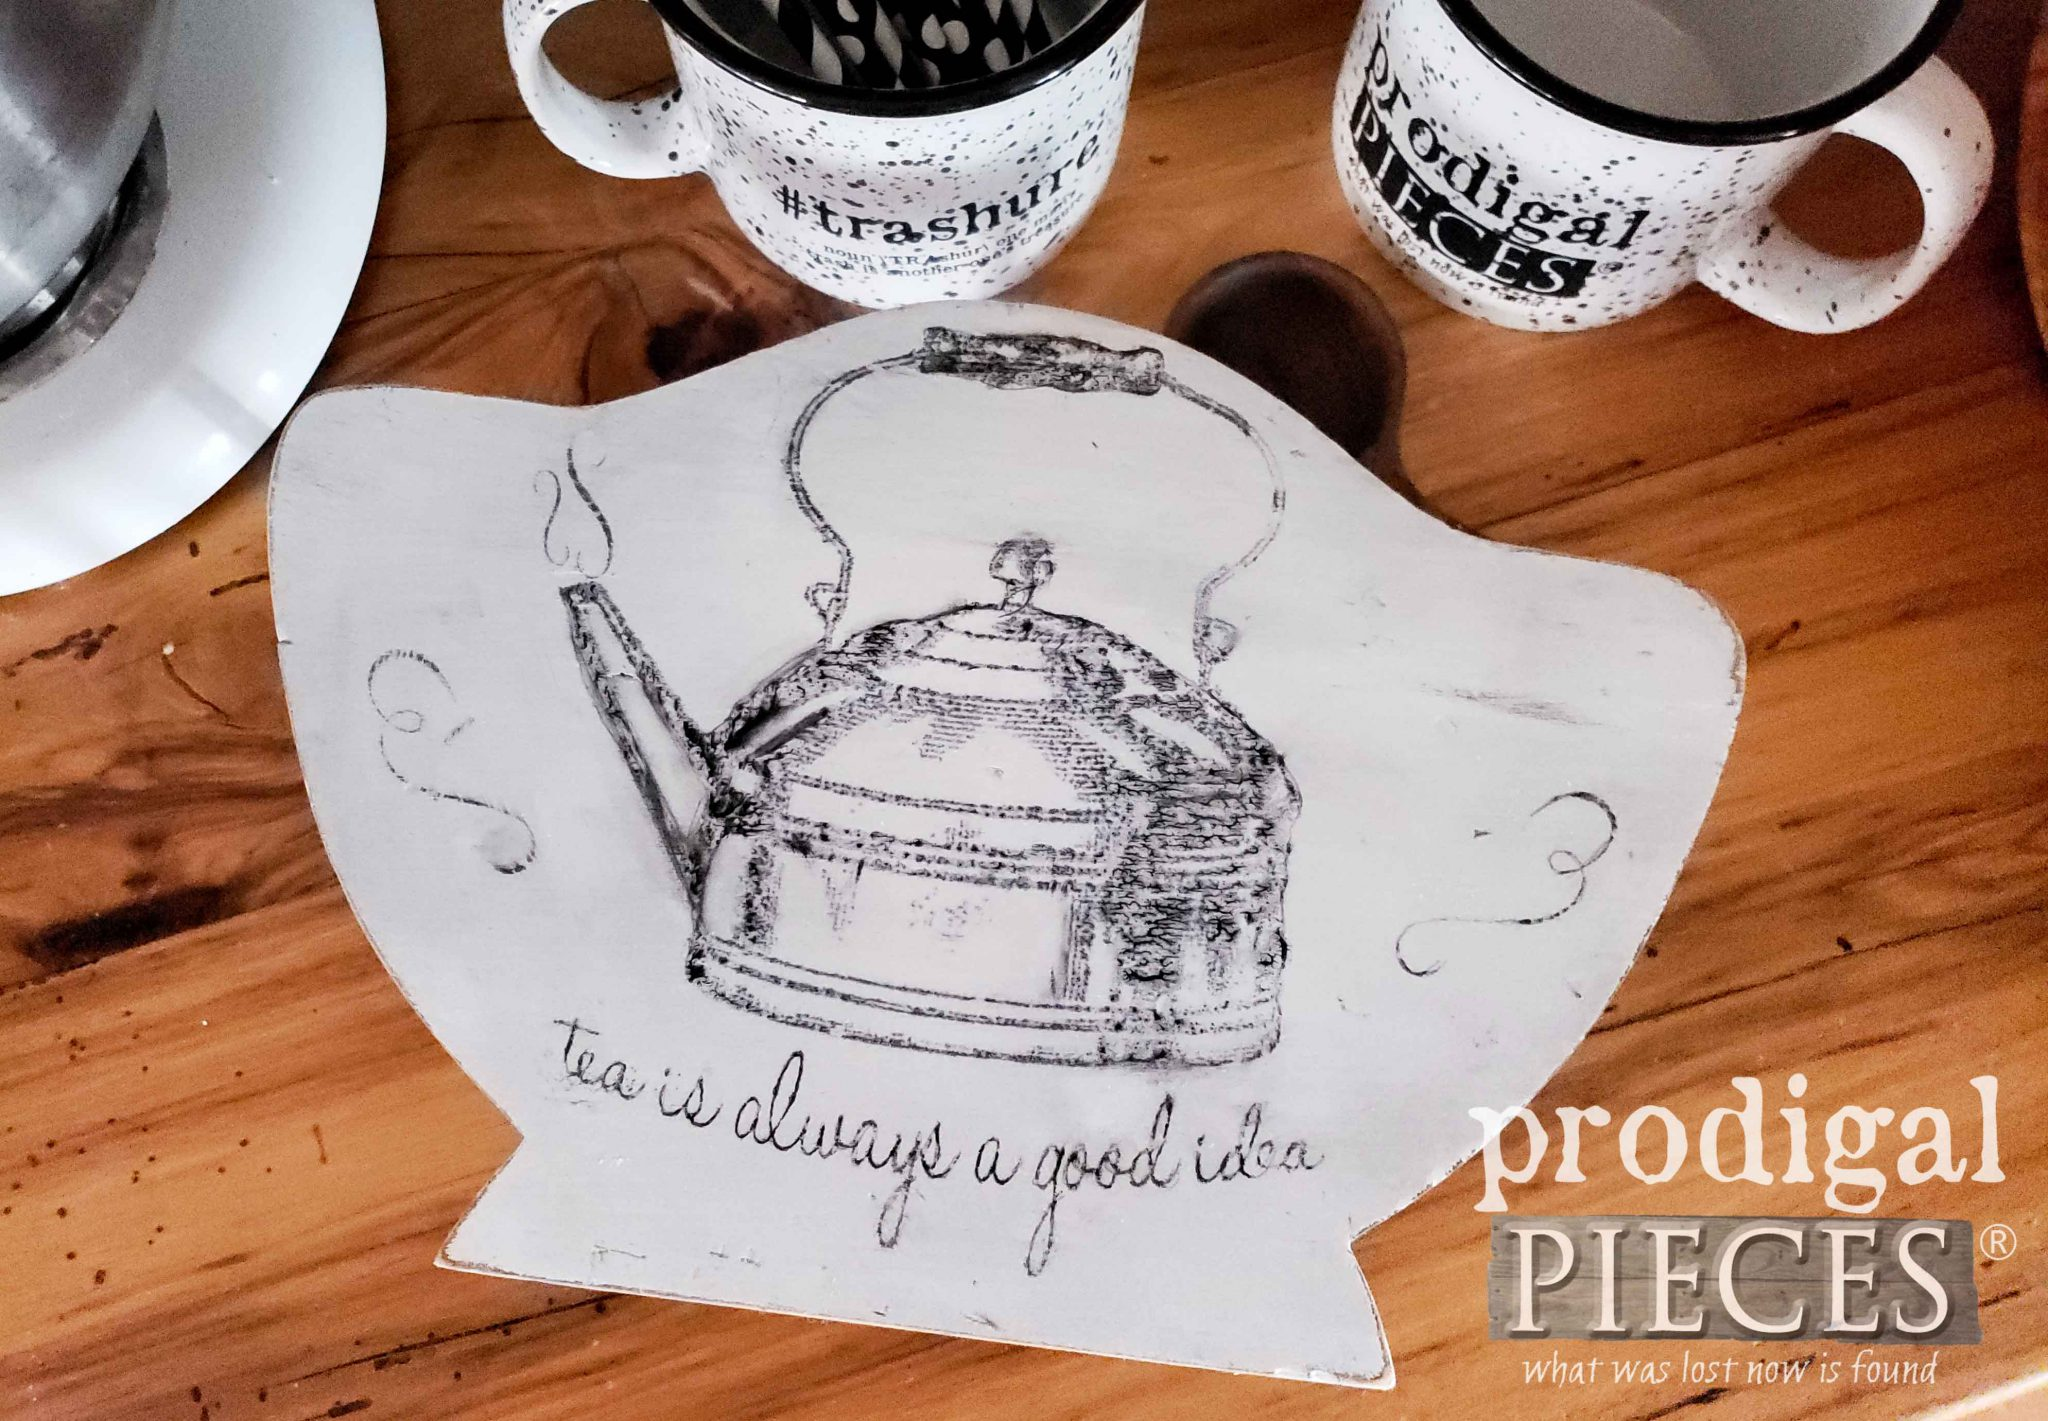 Farmhouse Style Teapot Trivet Riser from Upcycled Paper Plate Holder by Larissa of Prodigal Pieces | prodigalpieces.com #prodigalpieces #home #farmhouse #homedecor #rustic